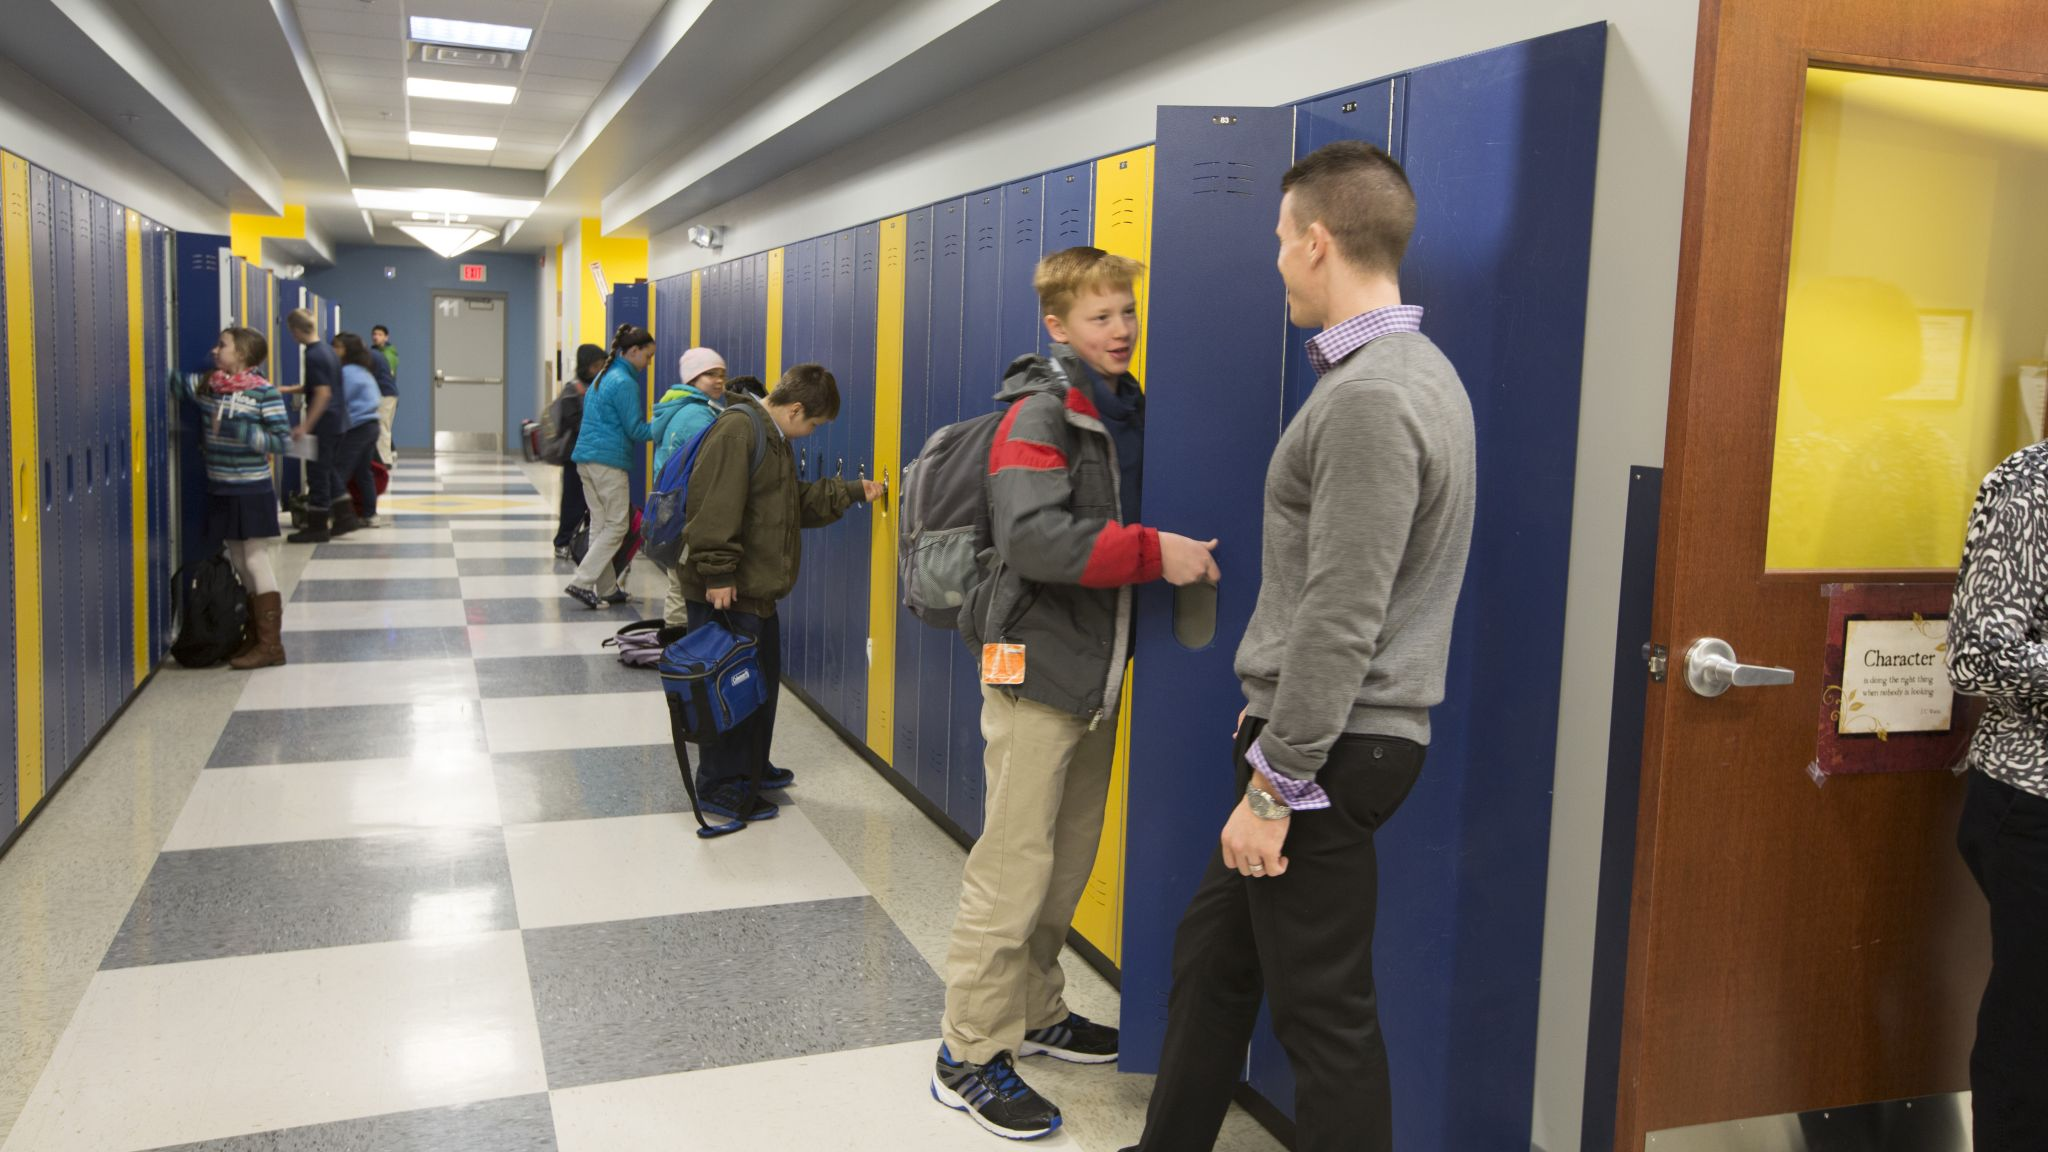 These lockers are able to stand up to the everyday wear and tear of students.